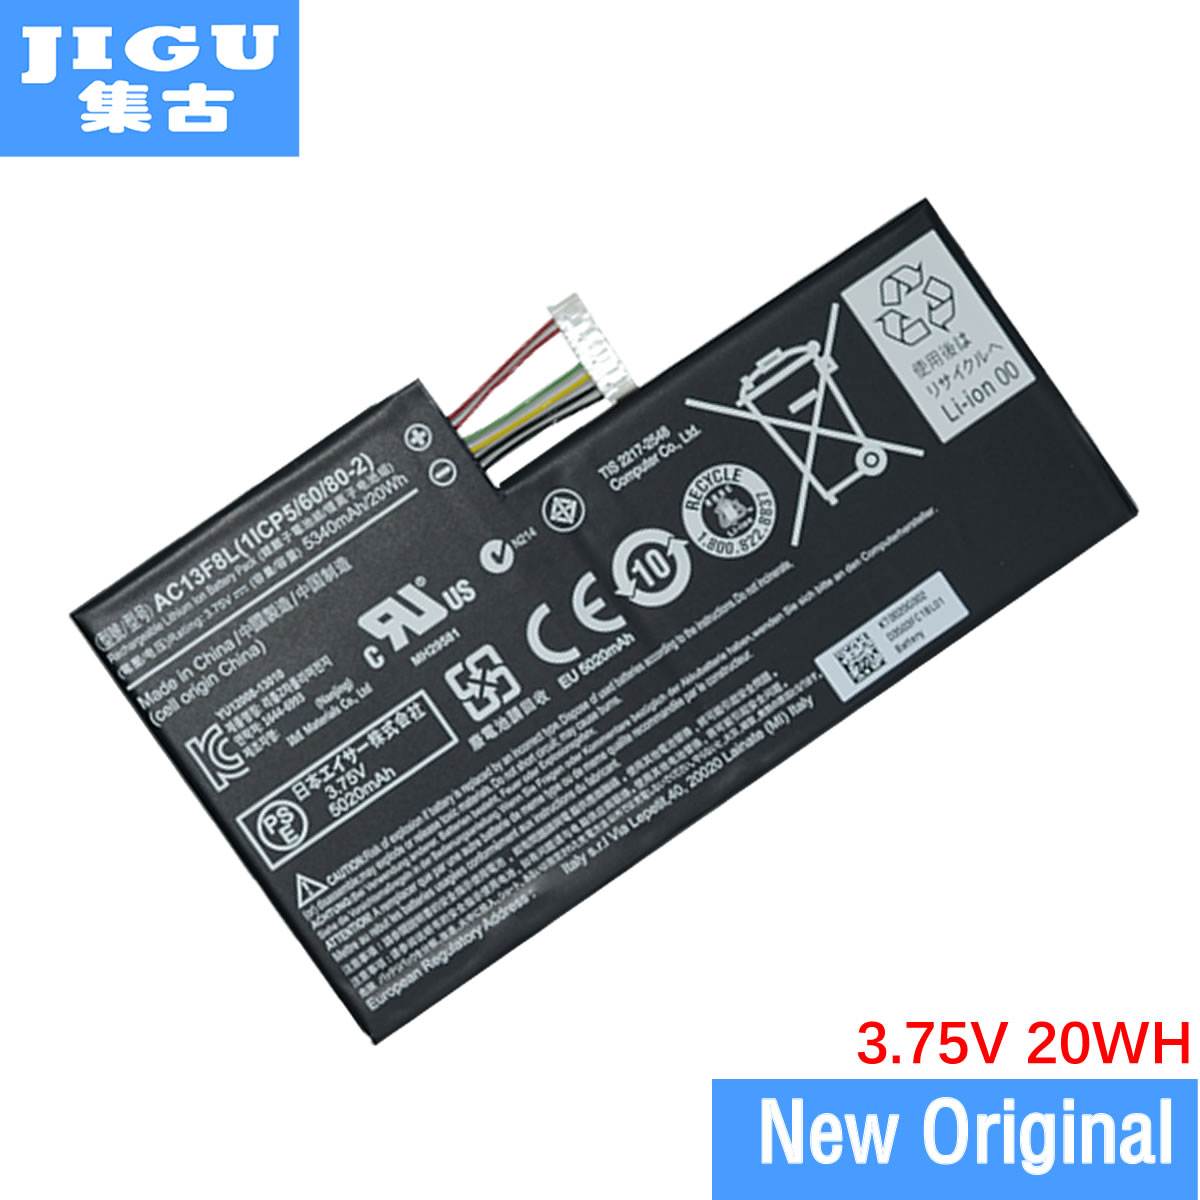 JIGU 1ICP5/60/80-2 AC13F8L Battery FOR Acer Iconia Tab A1-810 A1-811 W4-820 W4-820p 1CP5/60/80-2 AC13F3L LAptop Tablet PCJIGU 1ICP5/60/80-2 AC13F8L Battery FOR Acer Iconia Tab A1-810 A1-811 W4-820 W4-820p 1CP5/60/80-2 AC13F3L LAptop Tablet PC